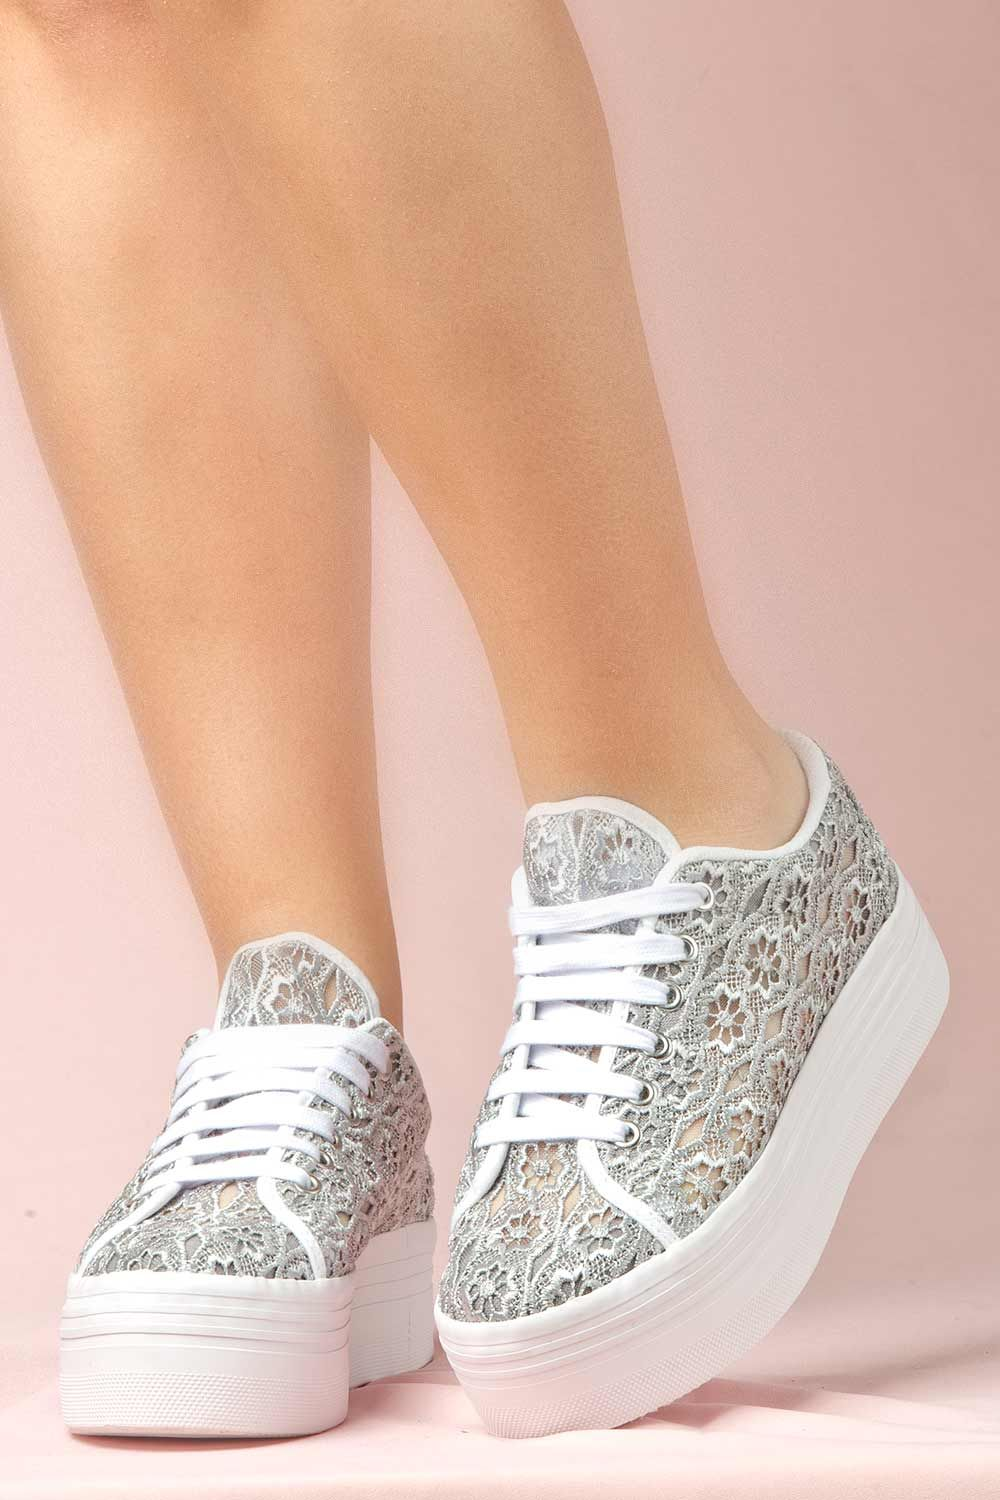 44f71aa8542 JEFFREY CAMPBELL SNEAKERS - ZOMG LACE DARK GREY